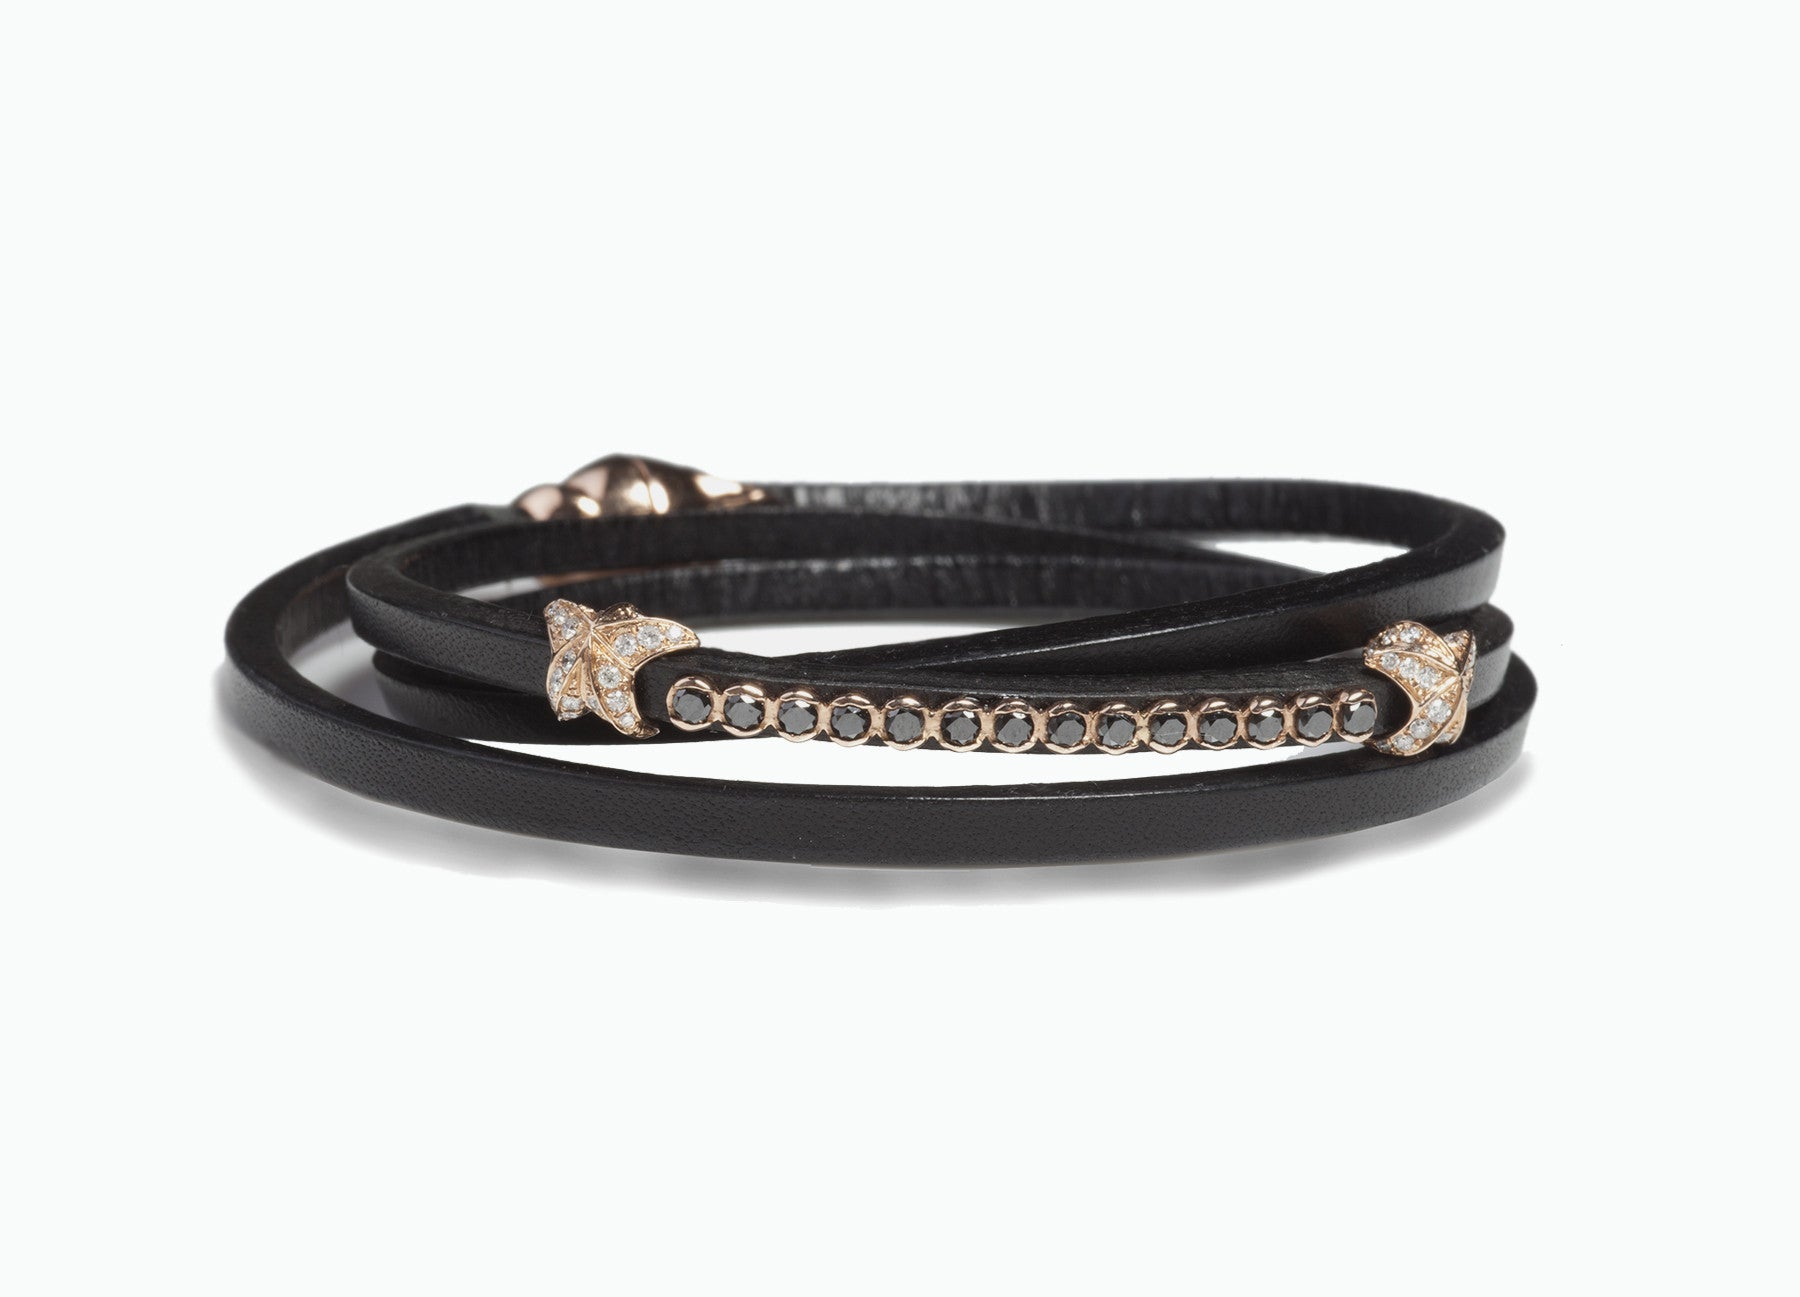 WRAP BRACELETS ESQUIRE TRIPLE WRAP